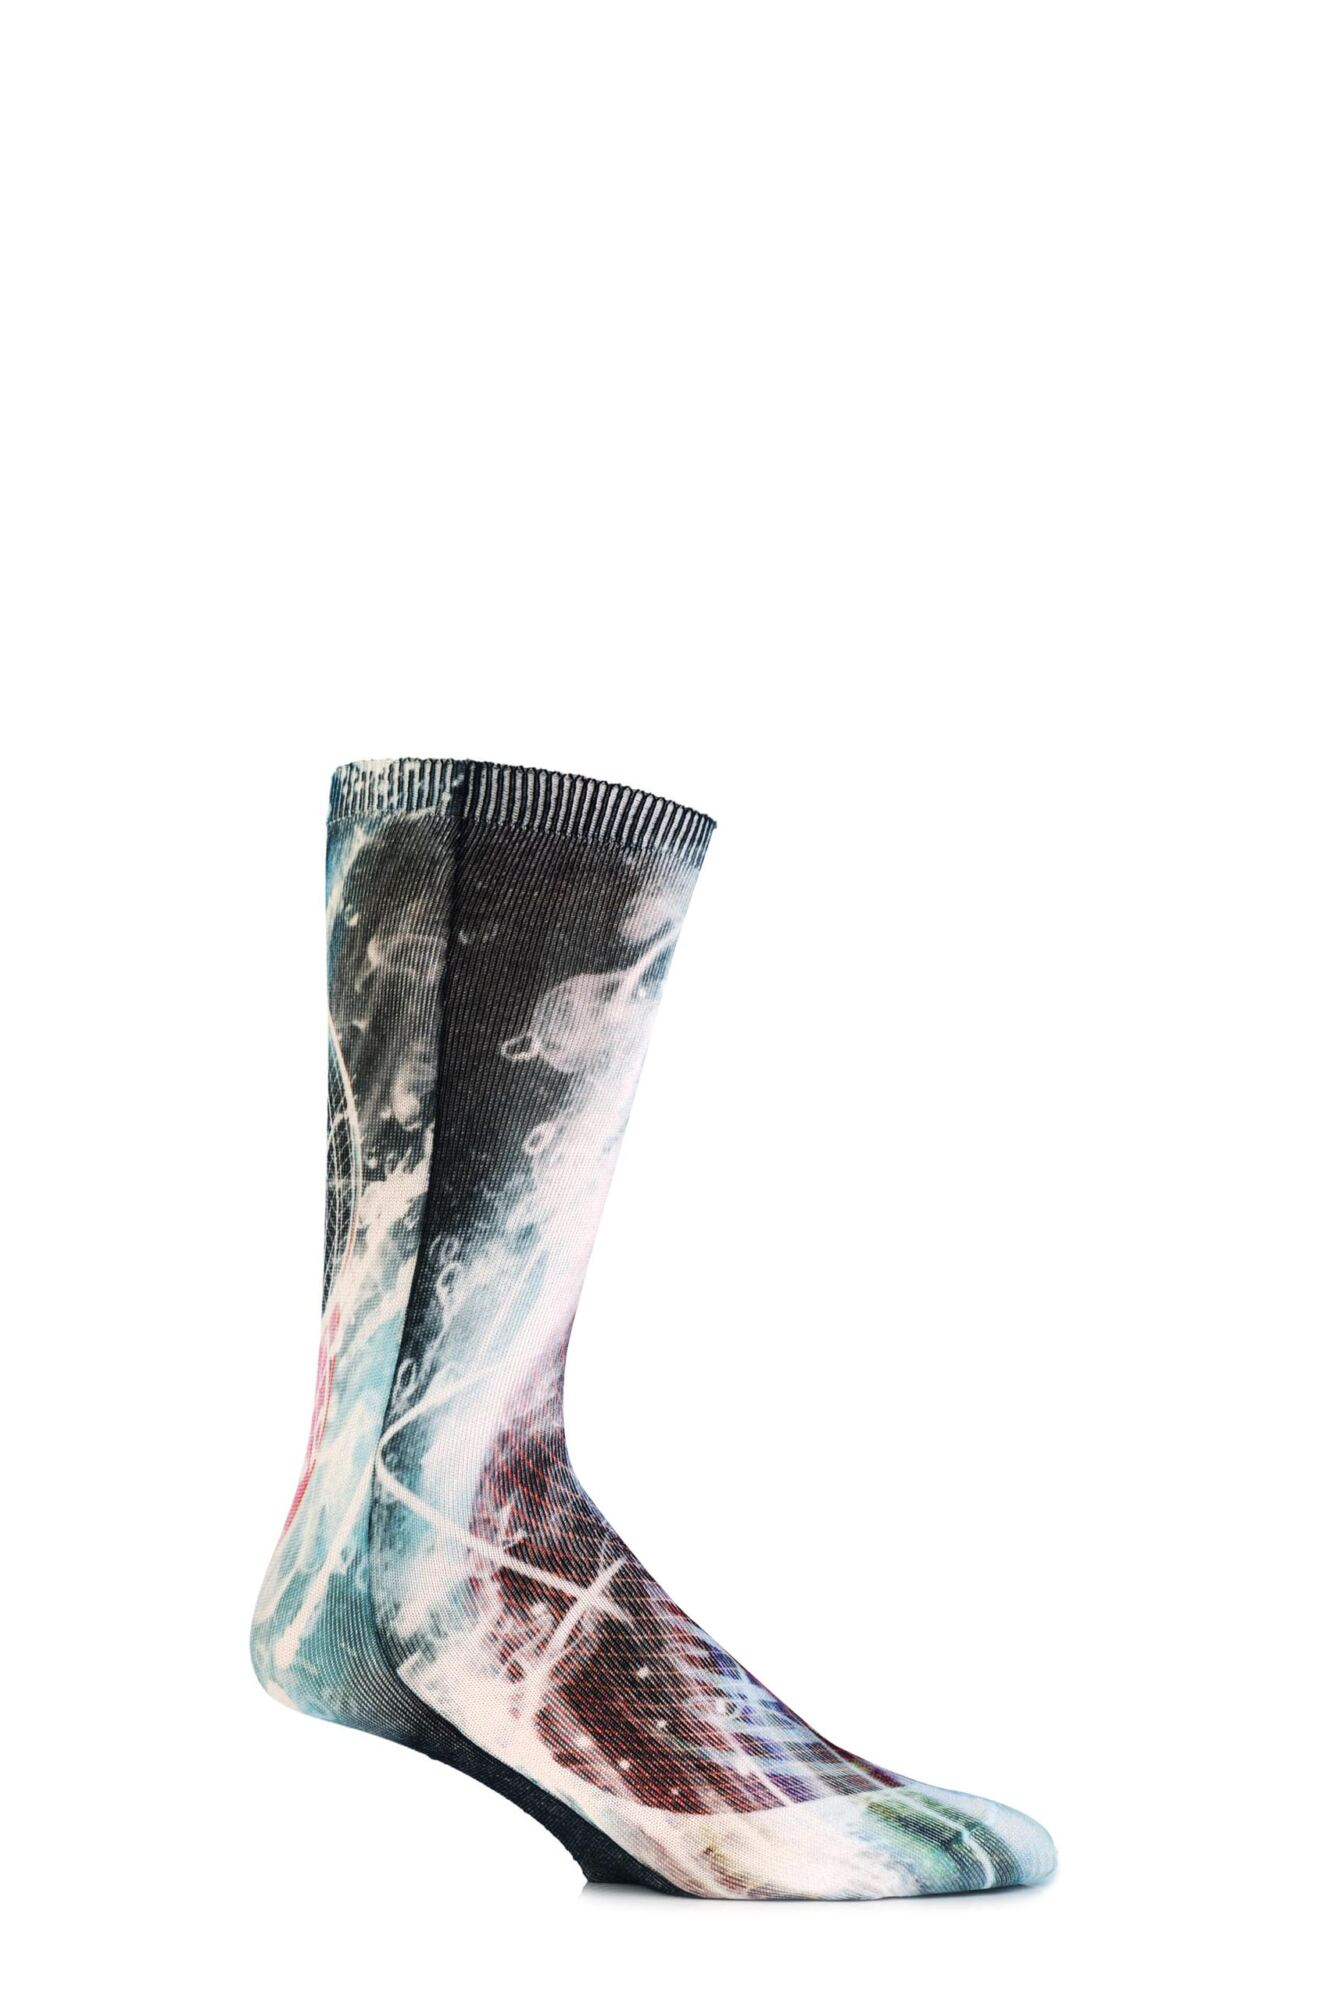 1 Pair HD Printed Socks Men's - Coca Cola